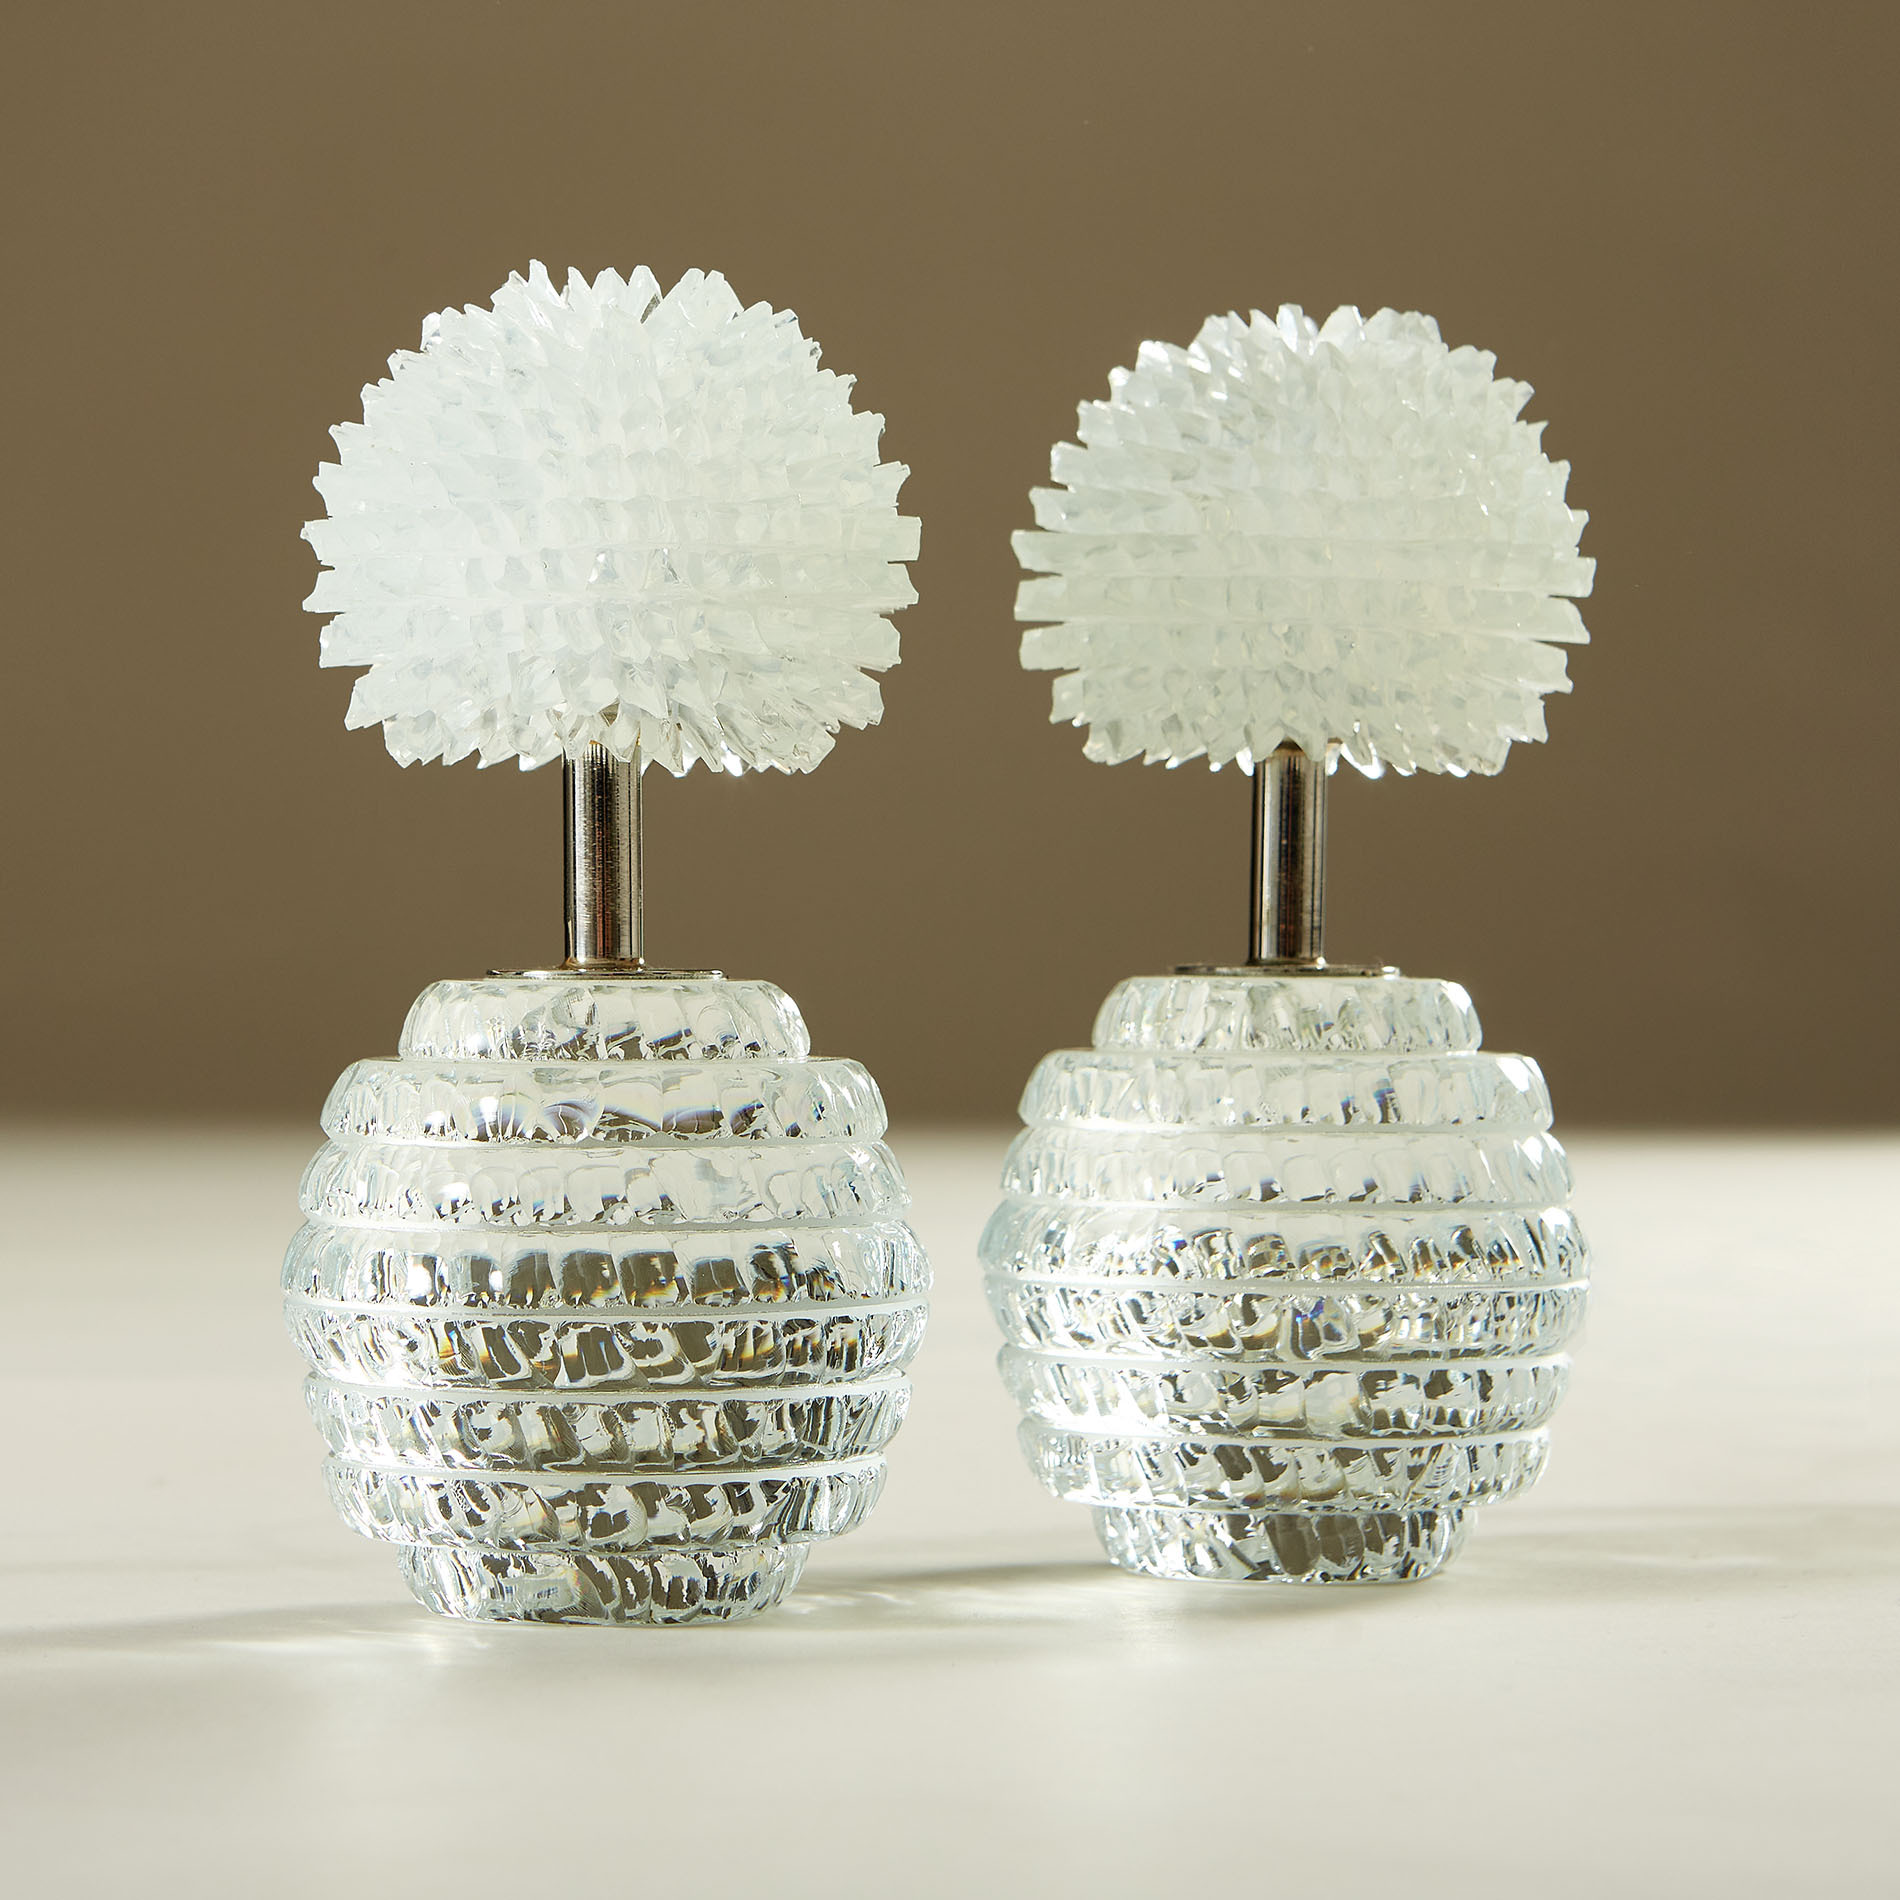 The image for Dandelion Lamps 20210225 Valerie Wade 3 082 V1